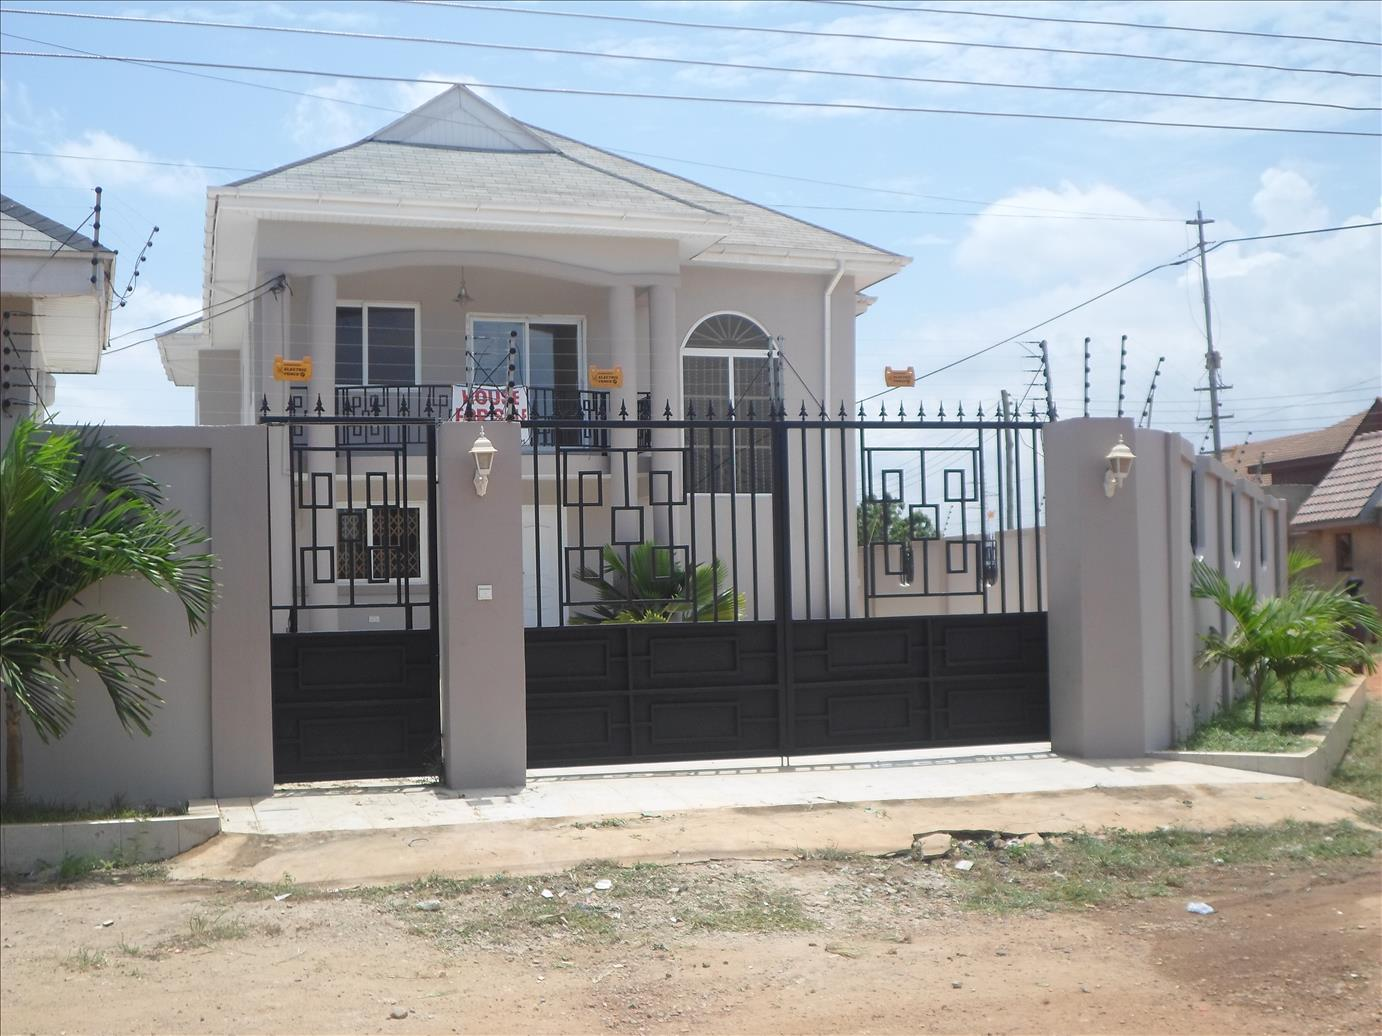 4 Bedroom House To Let At Trasacco Valley East Legon Accra further Mensvic Grand Hotel Accra Ghana additionally House For Sale Trasacco Valley Accra Ghana additionally 52f6db429ec0cc0ae4b0d14d466bc3cb also Luxury Real Estate In Africa 2. on east legon accra ghana